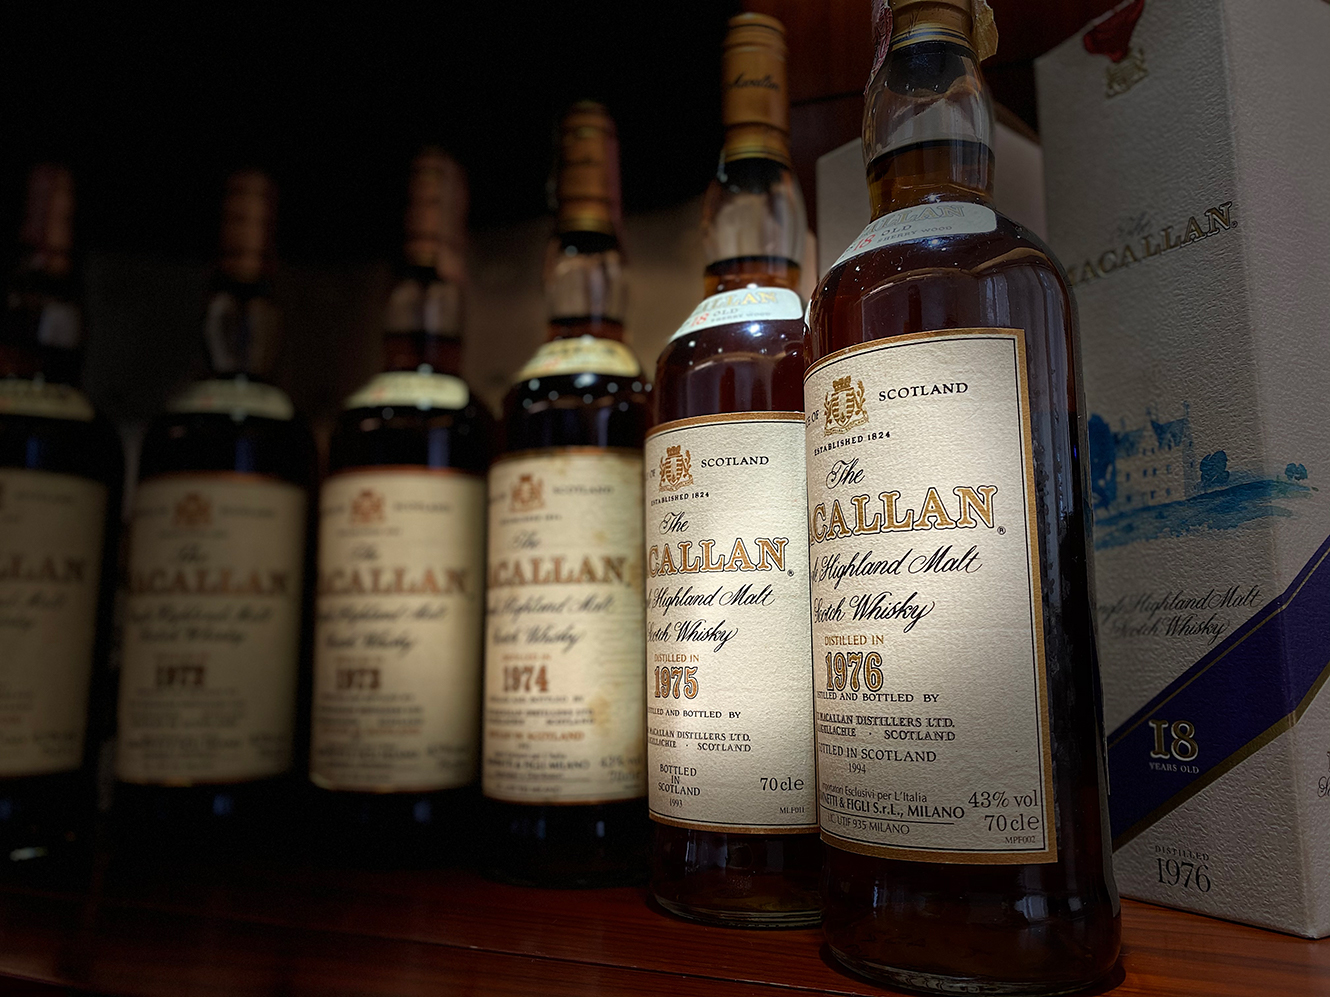 A collection of rare Macallan single malt scotch whiskies